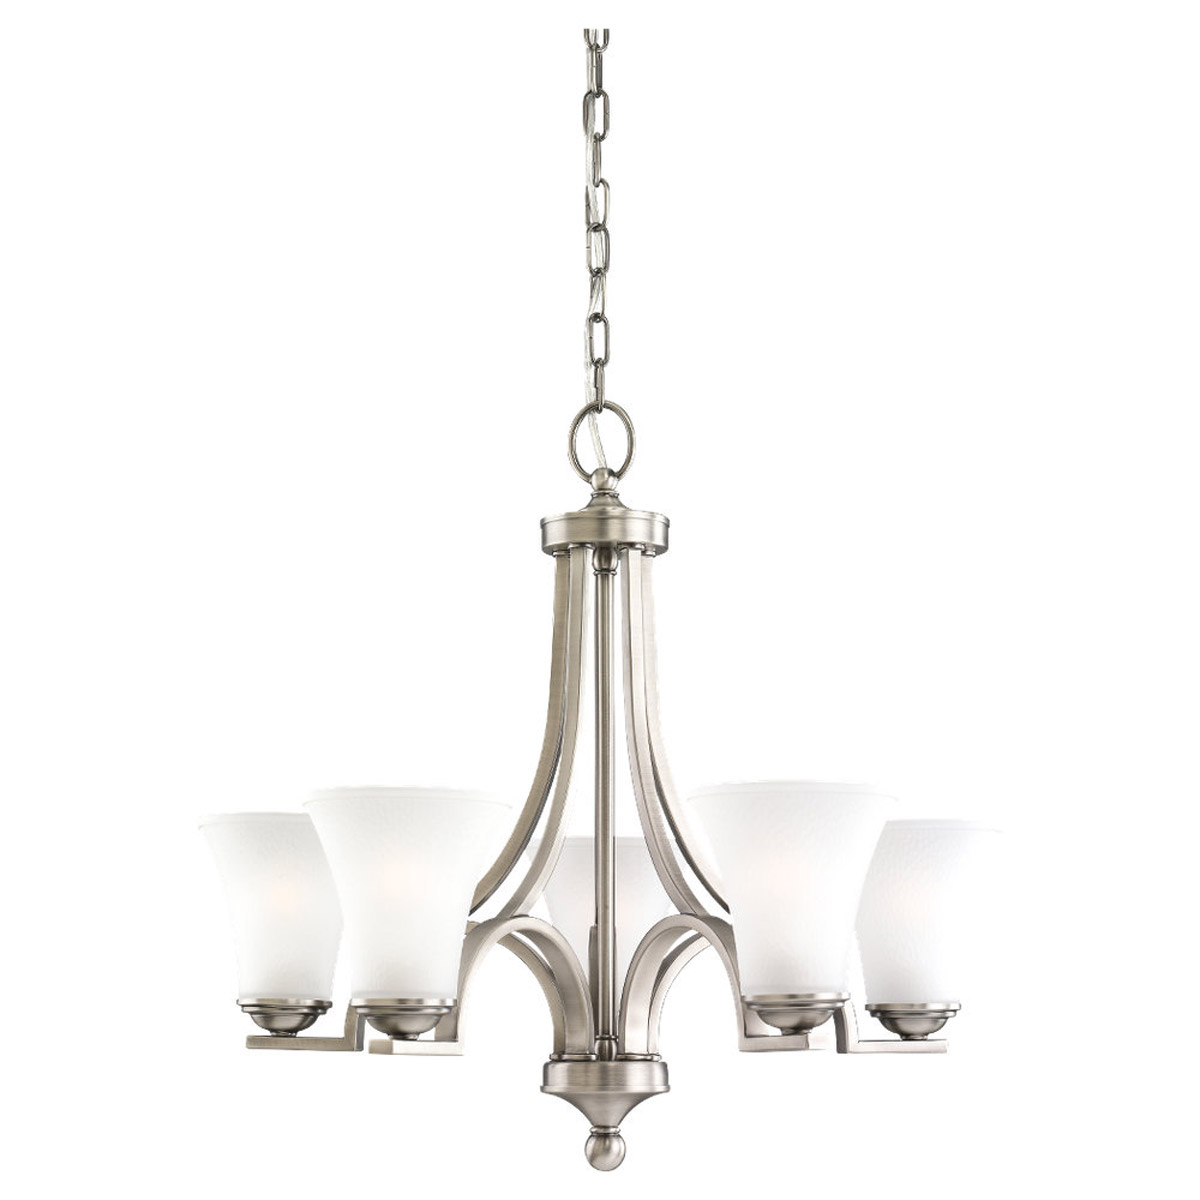 Sea Gull Lighting Somerton 5 Light Chandelier in Antique Brushed Nickel 31376-965